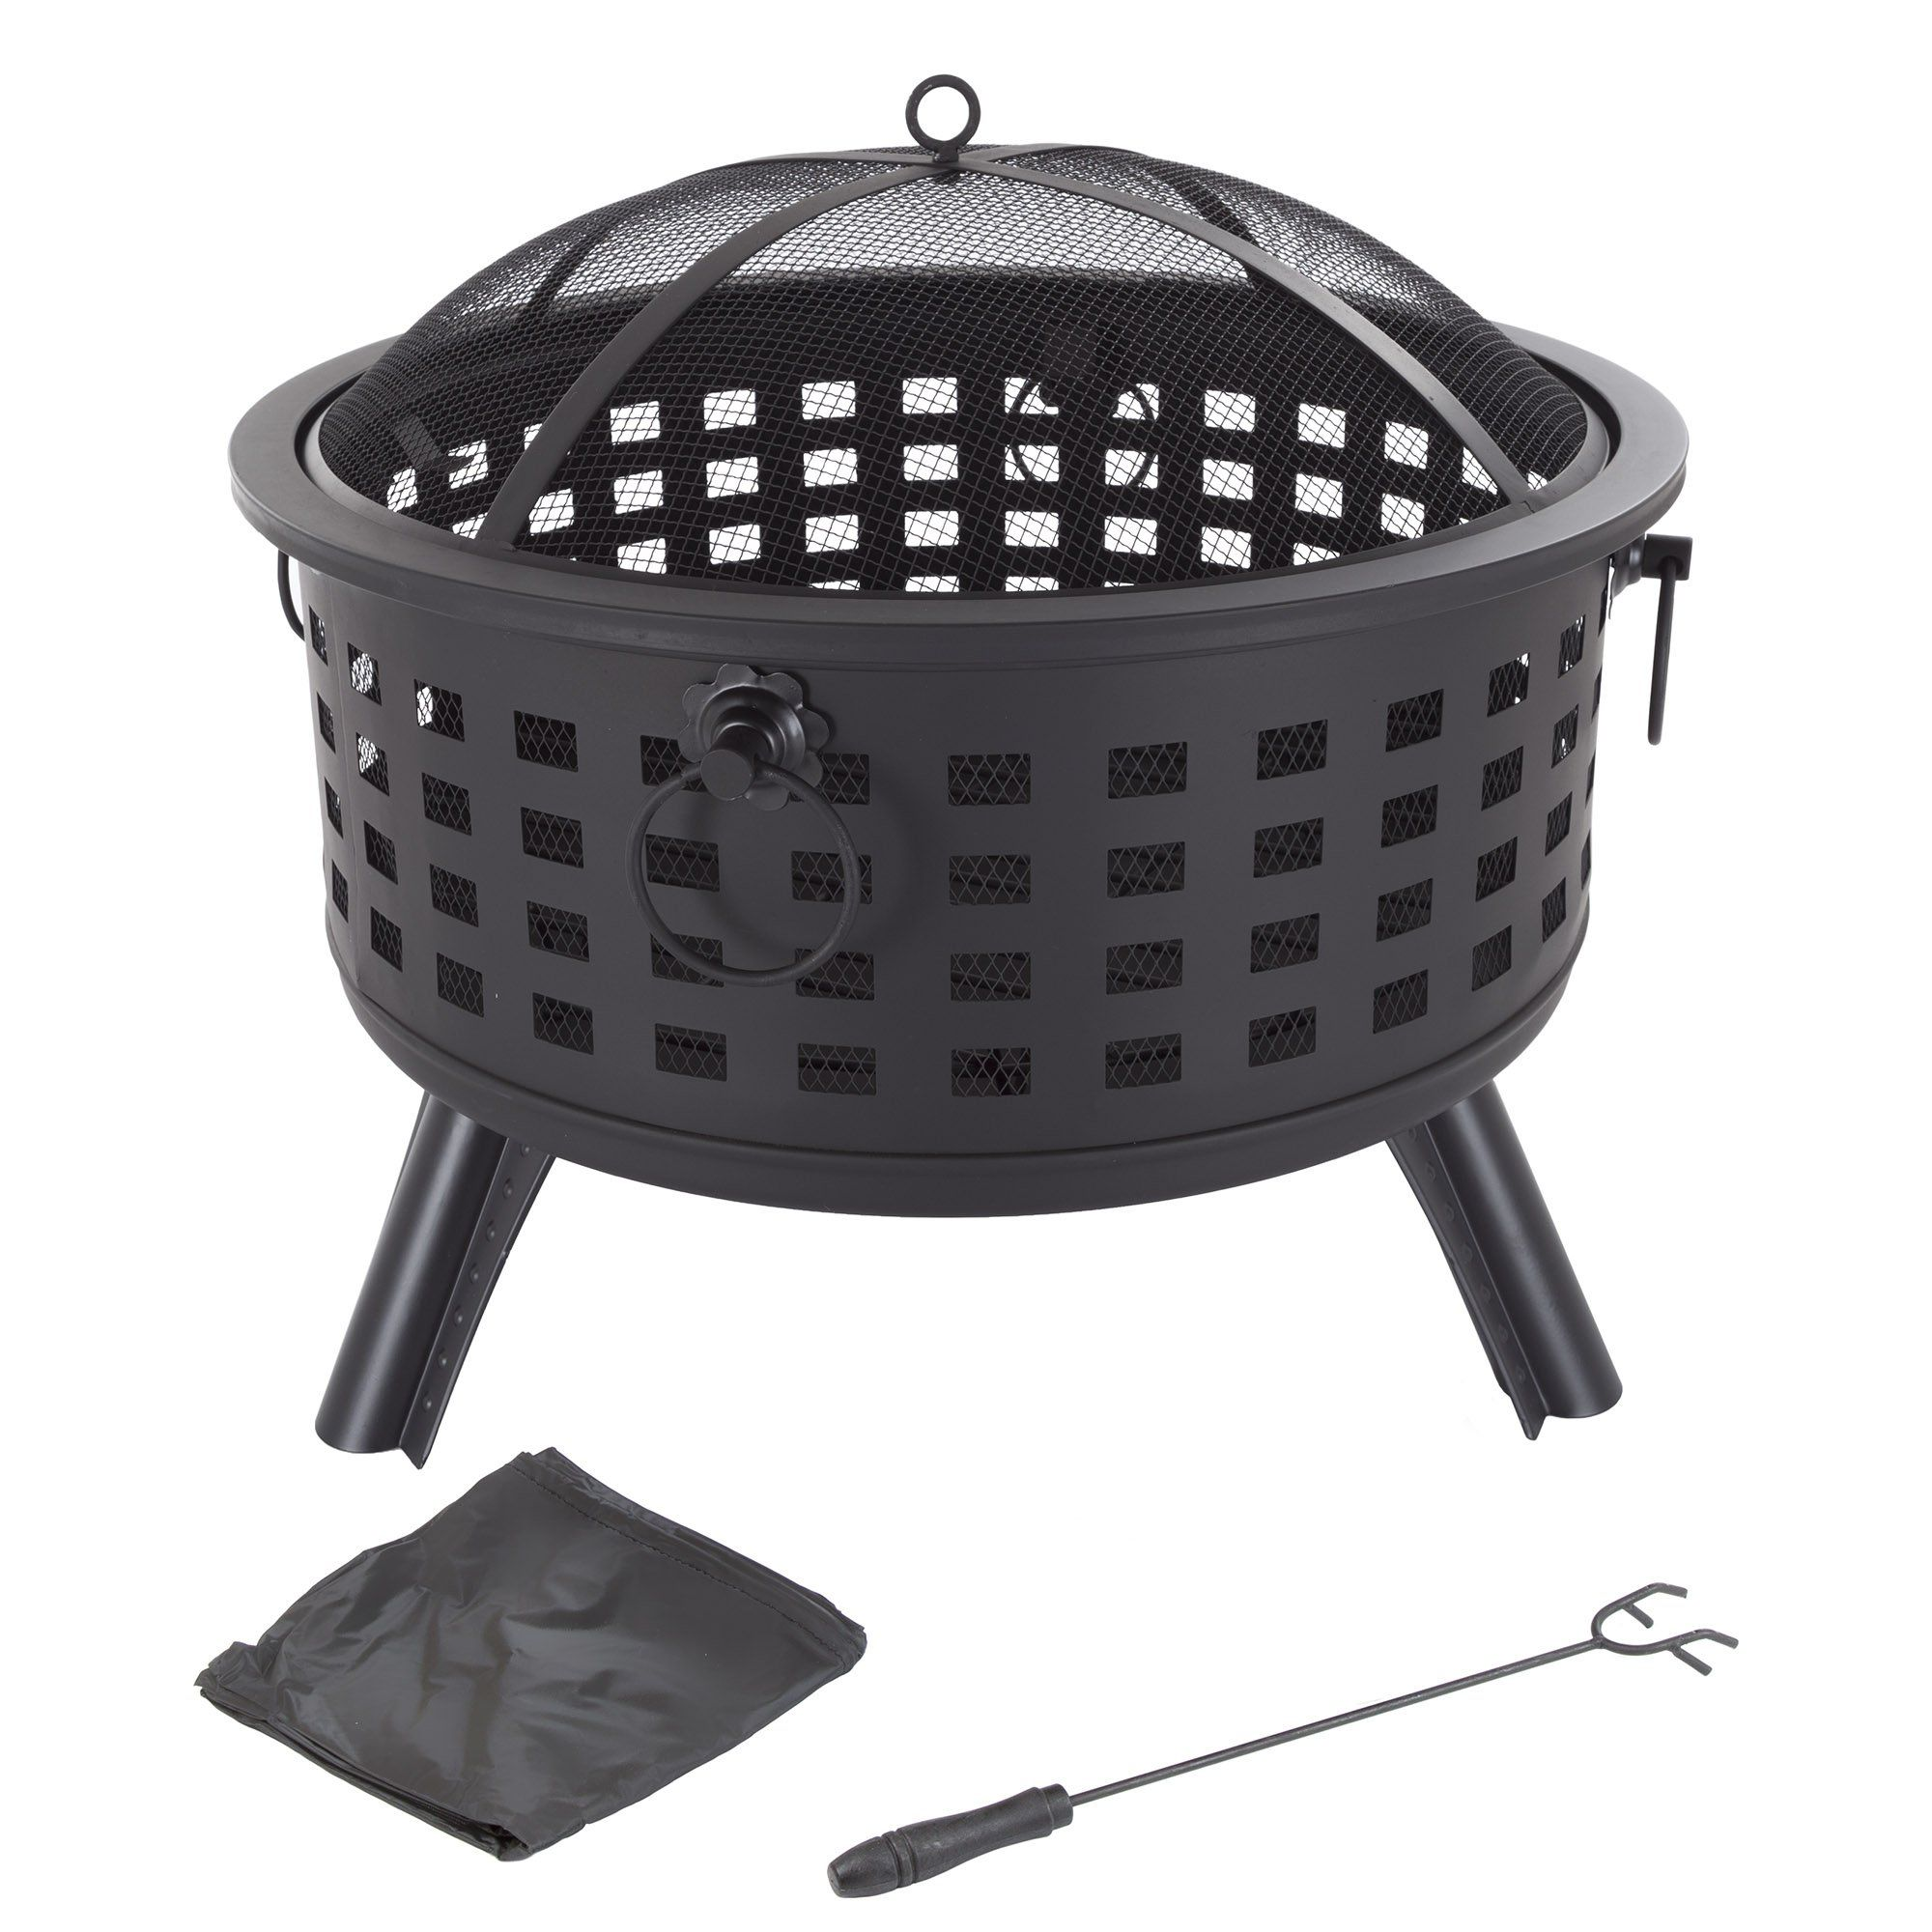 Fire pit set wood burning pit includes spark screen and